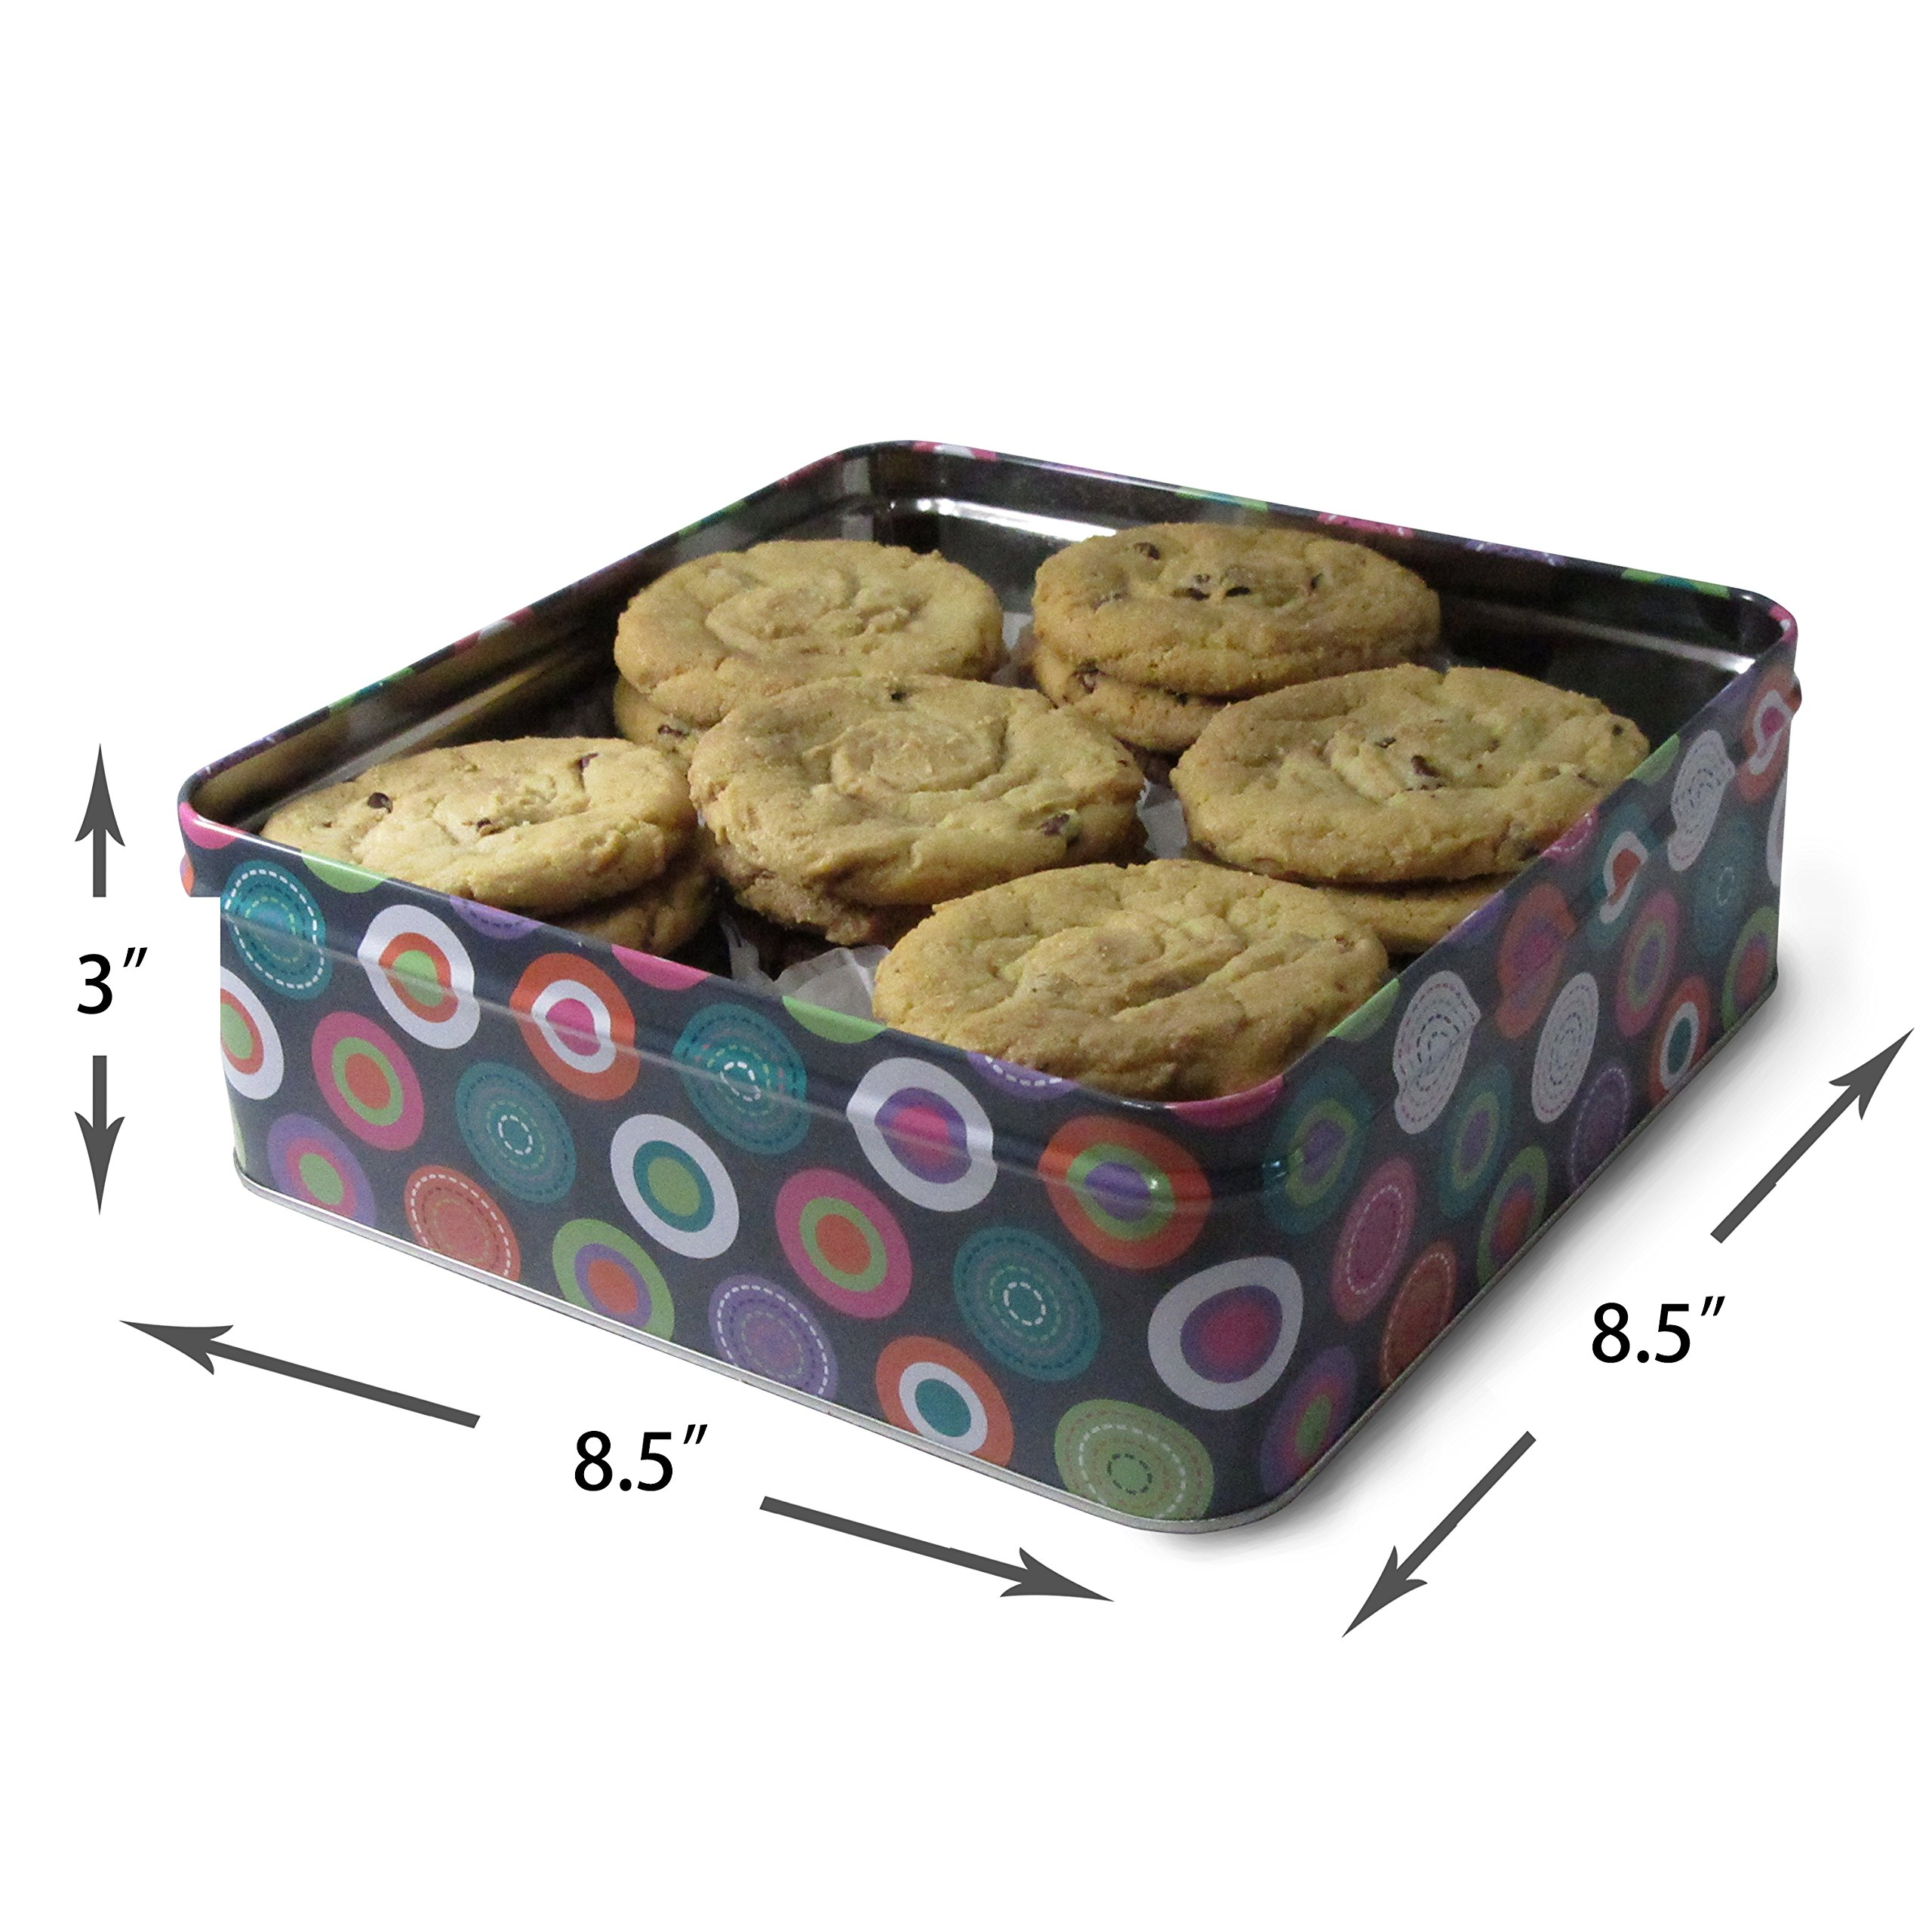 Fresh Baked Chocolate Chip Cookie Tins, Comes in Multiple Sizes | Gimmee Jimmy's Authentic Cookies-2 Pound Tin by Gimmee Jimmy's Cookies (Image #3)